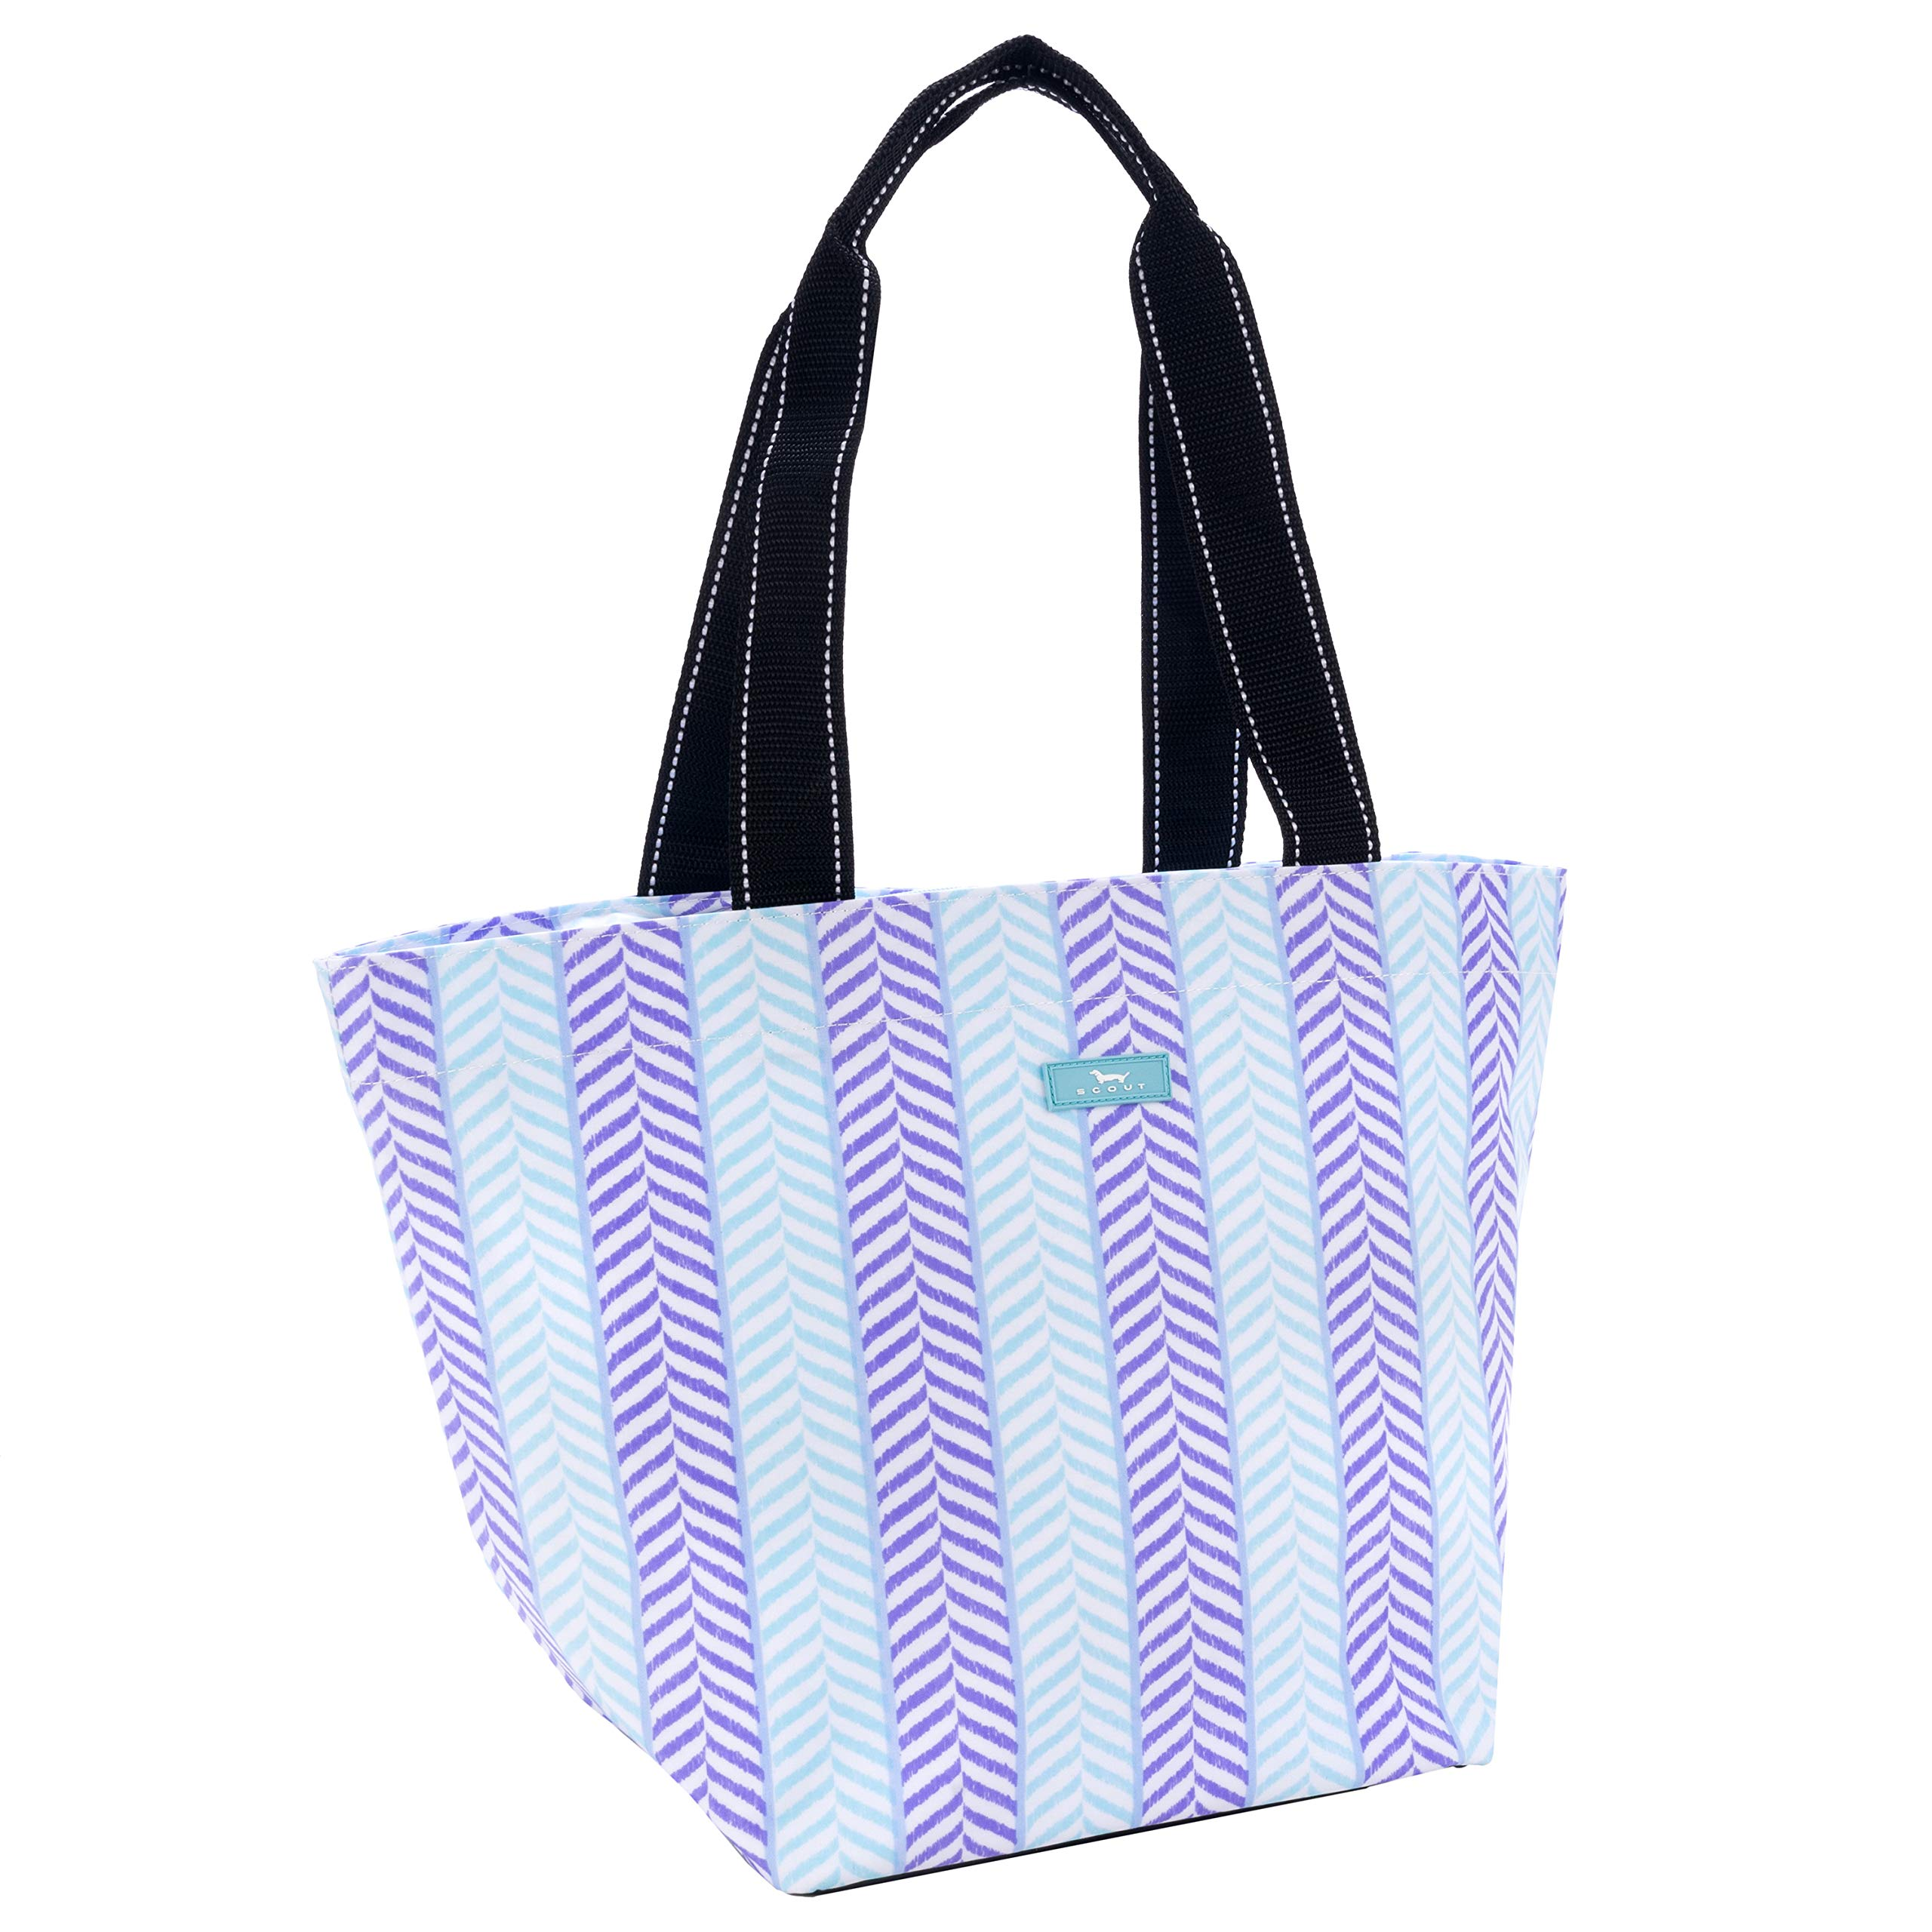 SCOUT Daytripper Everyday Tote Bag, Shoulder Bag, Water Resistant, Wipes Clean, Zips Closed, Pixie Stix